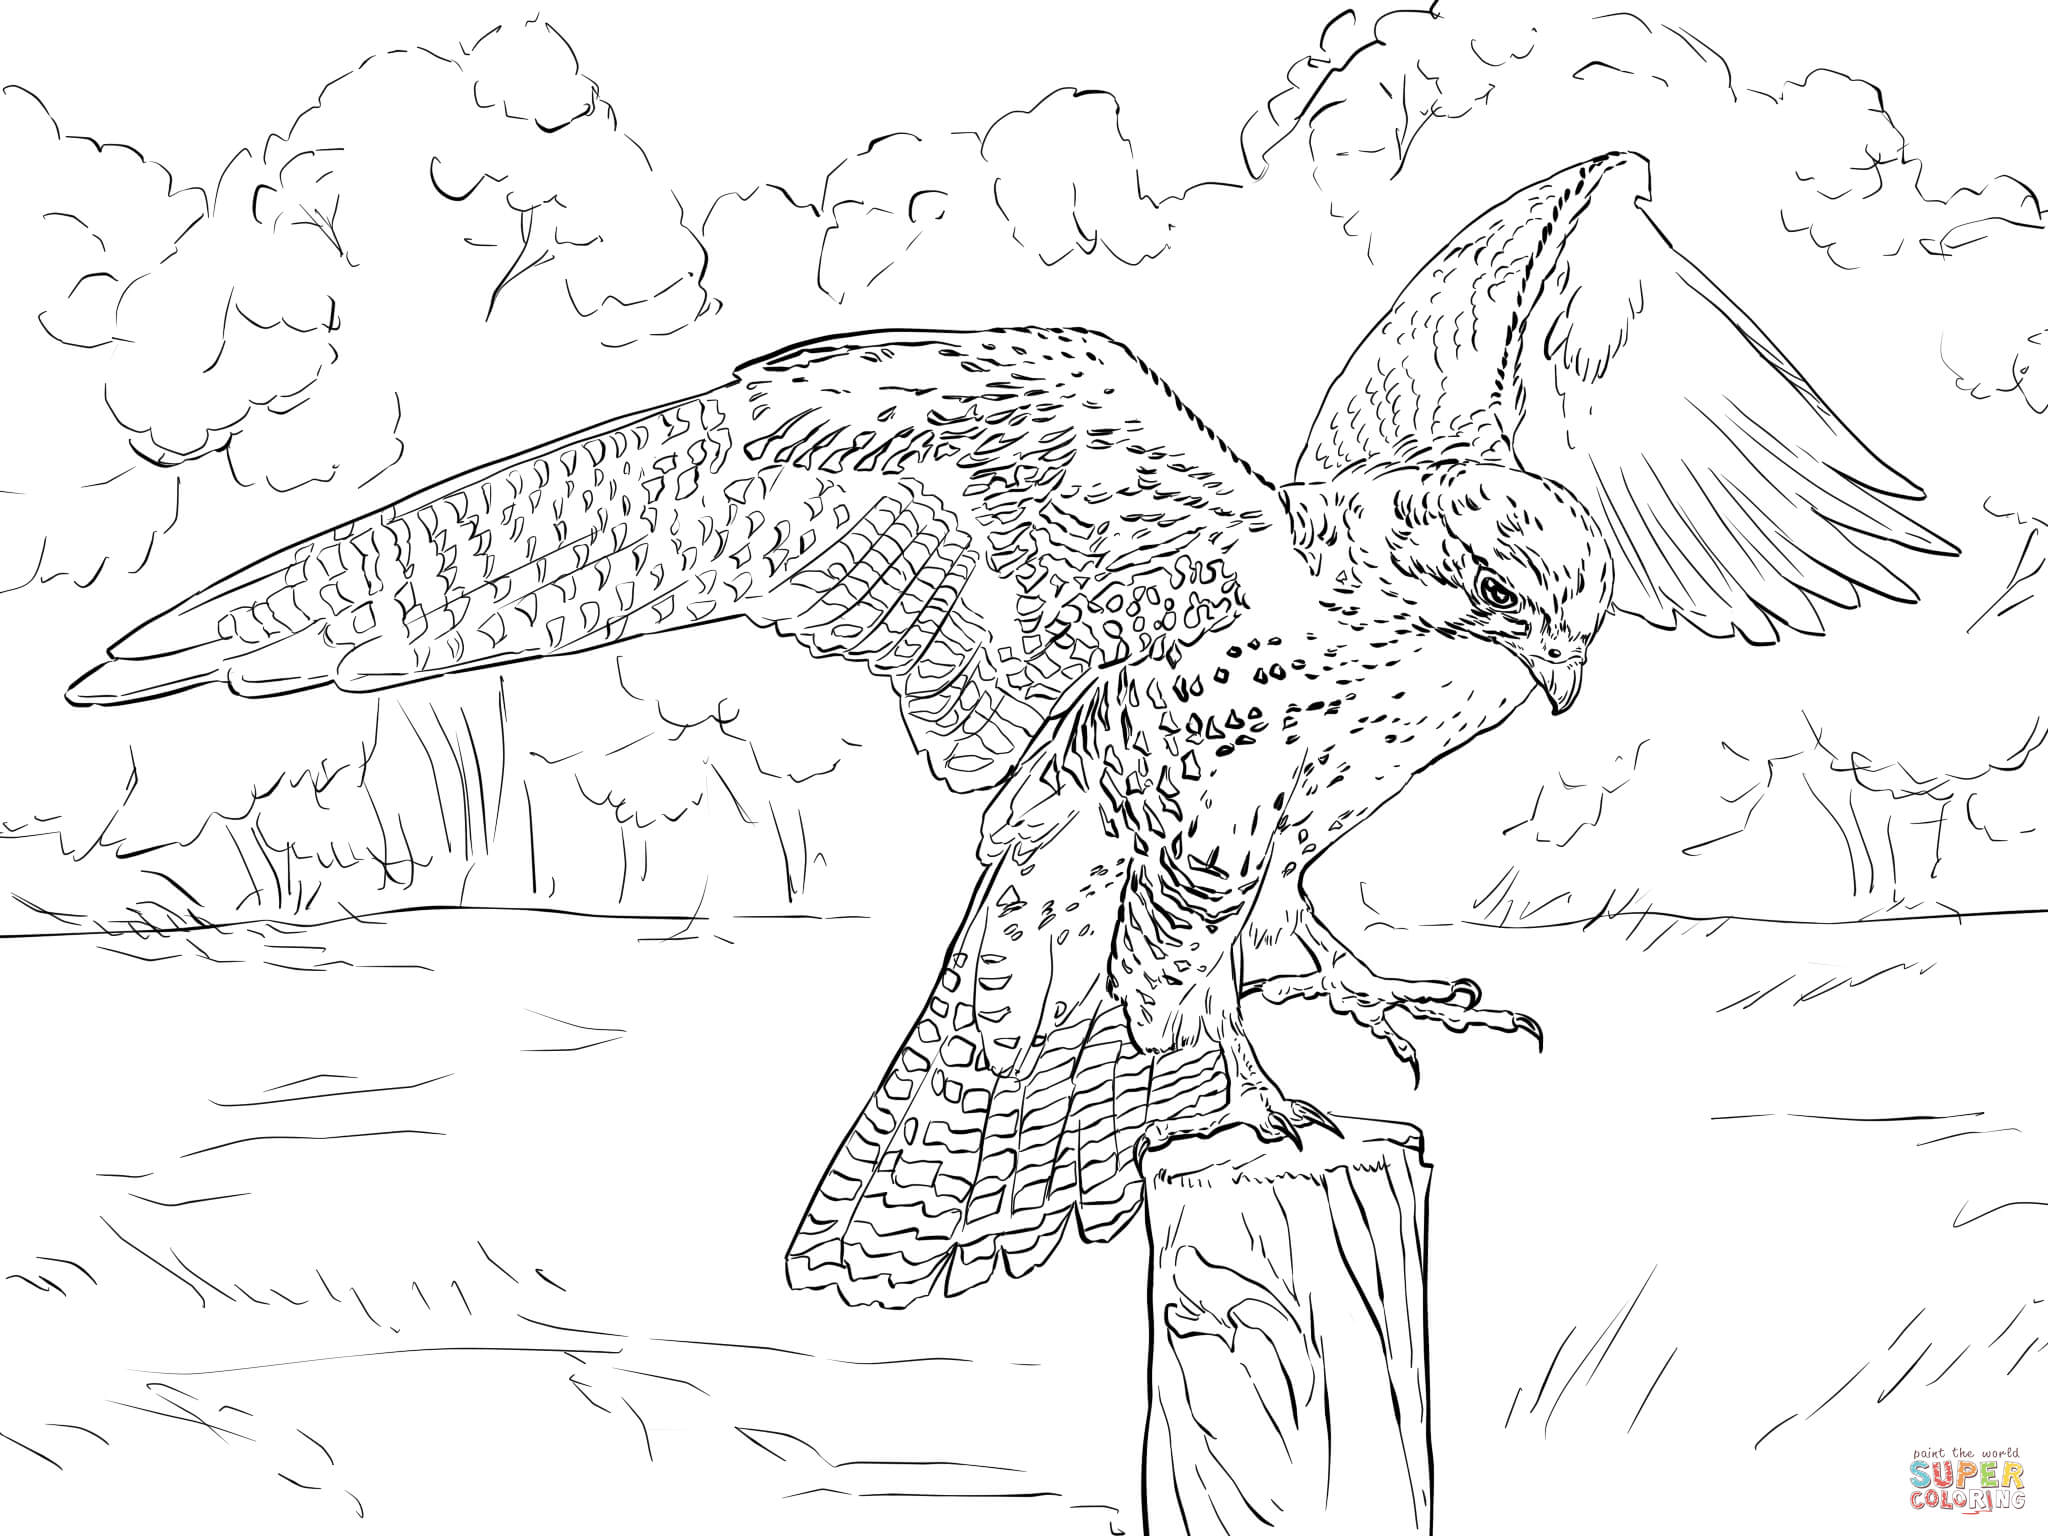 Peregrine Falcon coloring #18, Download drawings